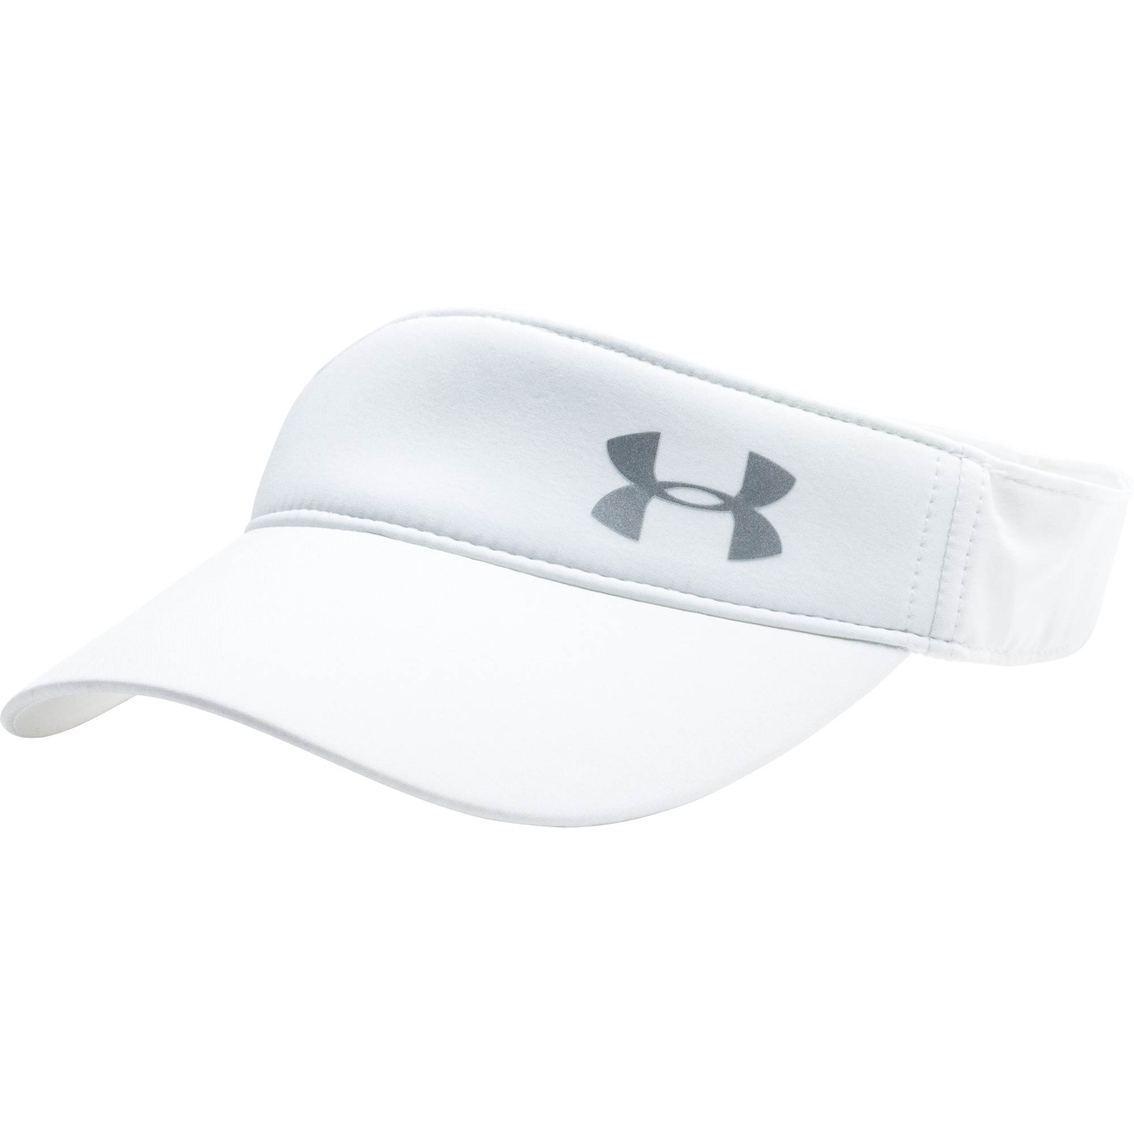 27a45ddc117 Under Armour Women s Ua Fly Fast Visor